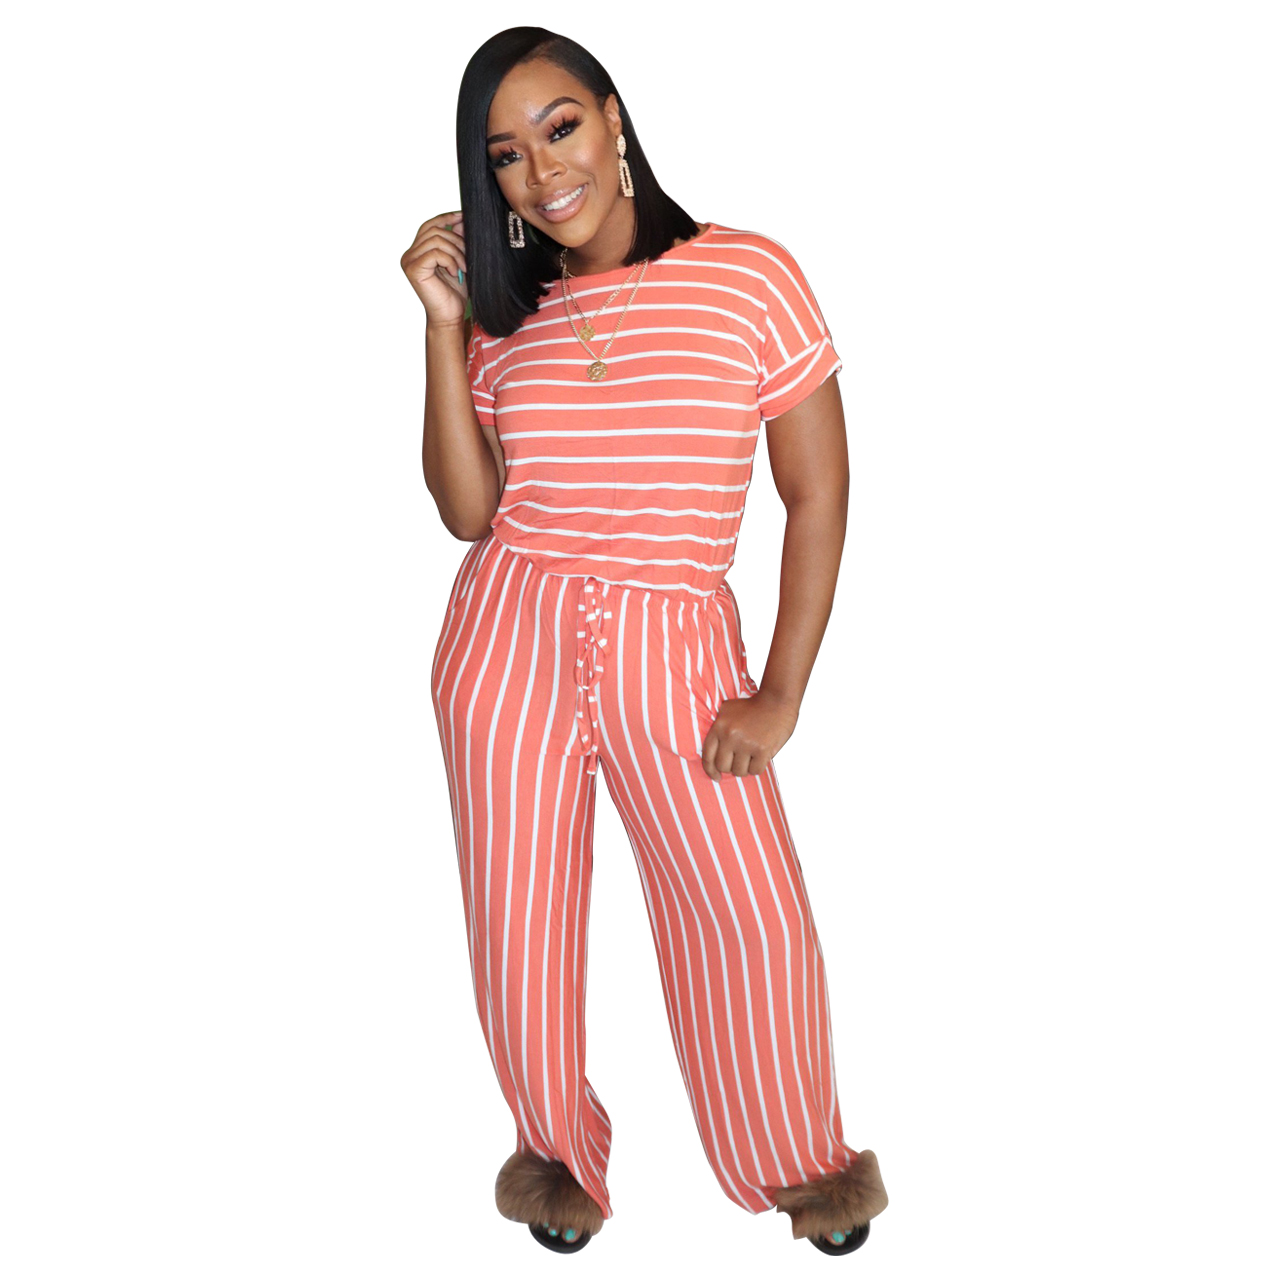 H25b369f1488b41ec97f35f0e4e3e0a92n - Fashion Women Stripes Jumpsuits Summer New Arrival Short Sleeves Crew Neck Women Casual Rompers Loose Daily Wear Outfits